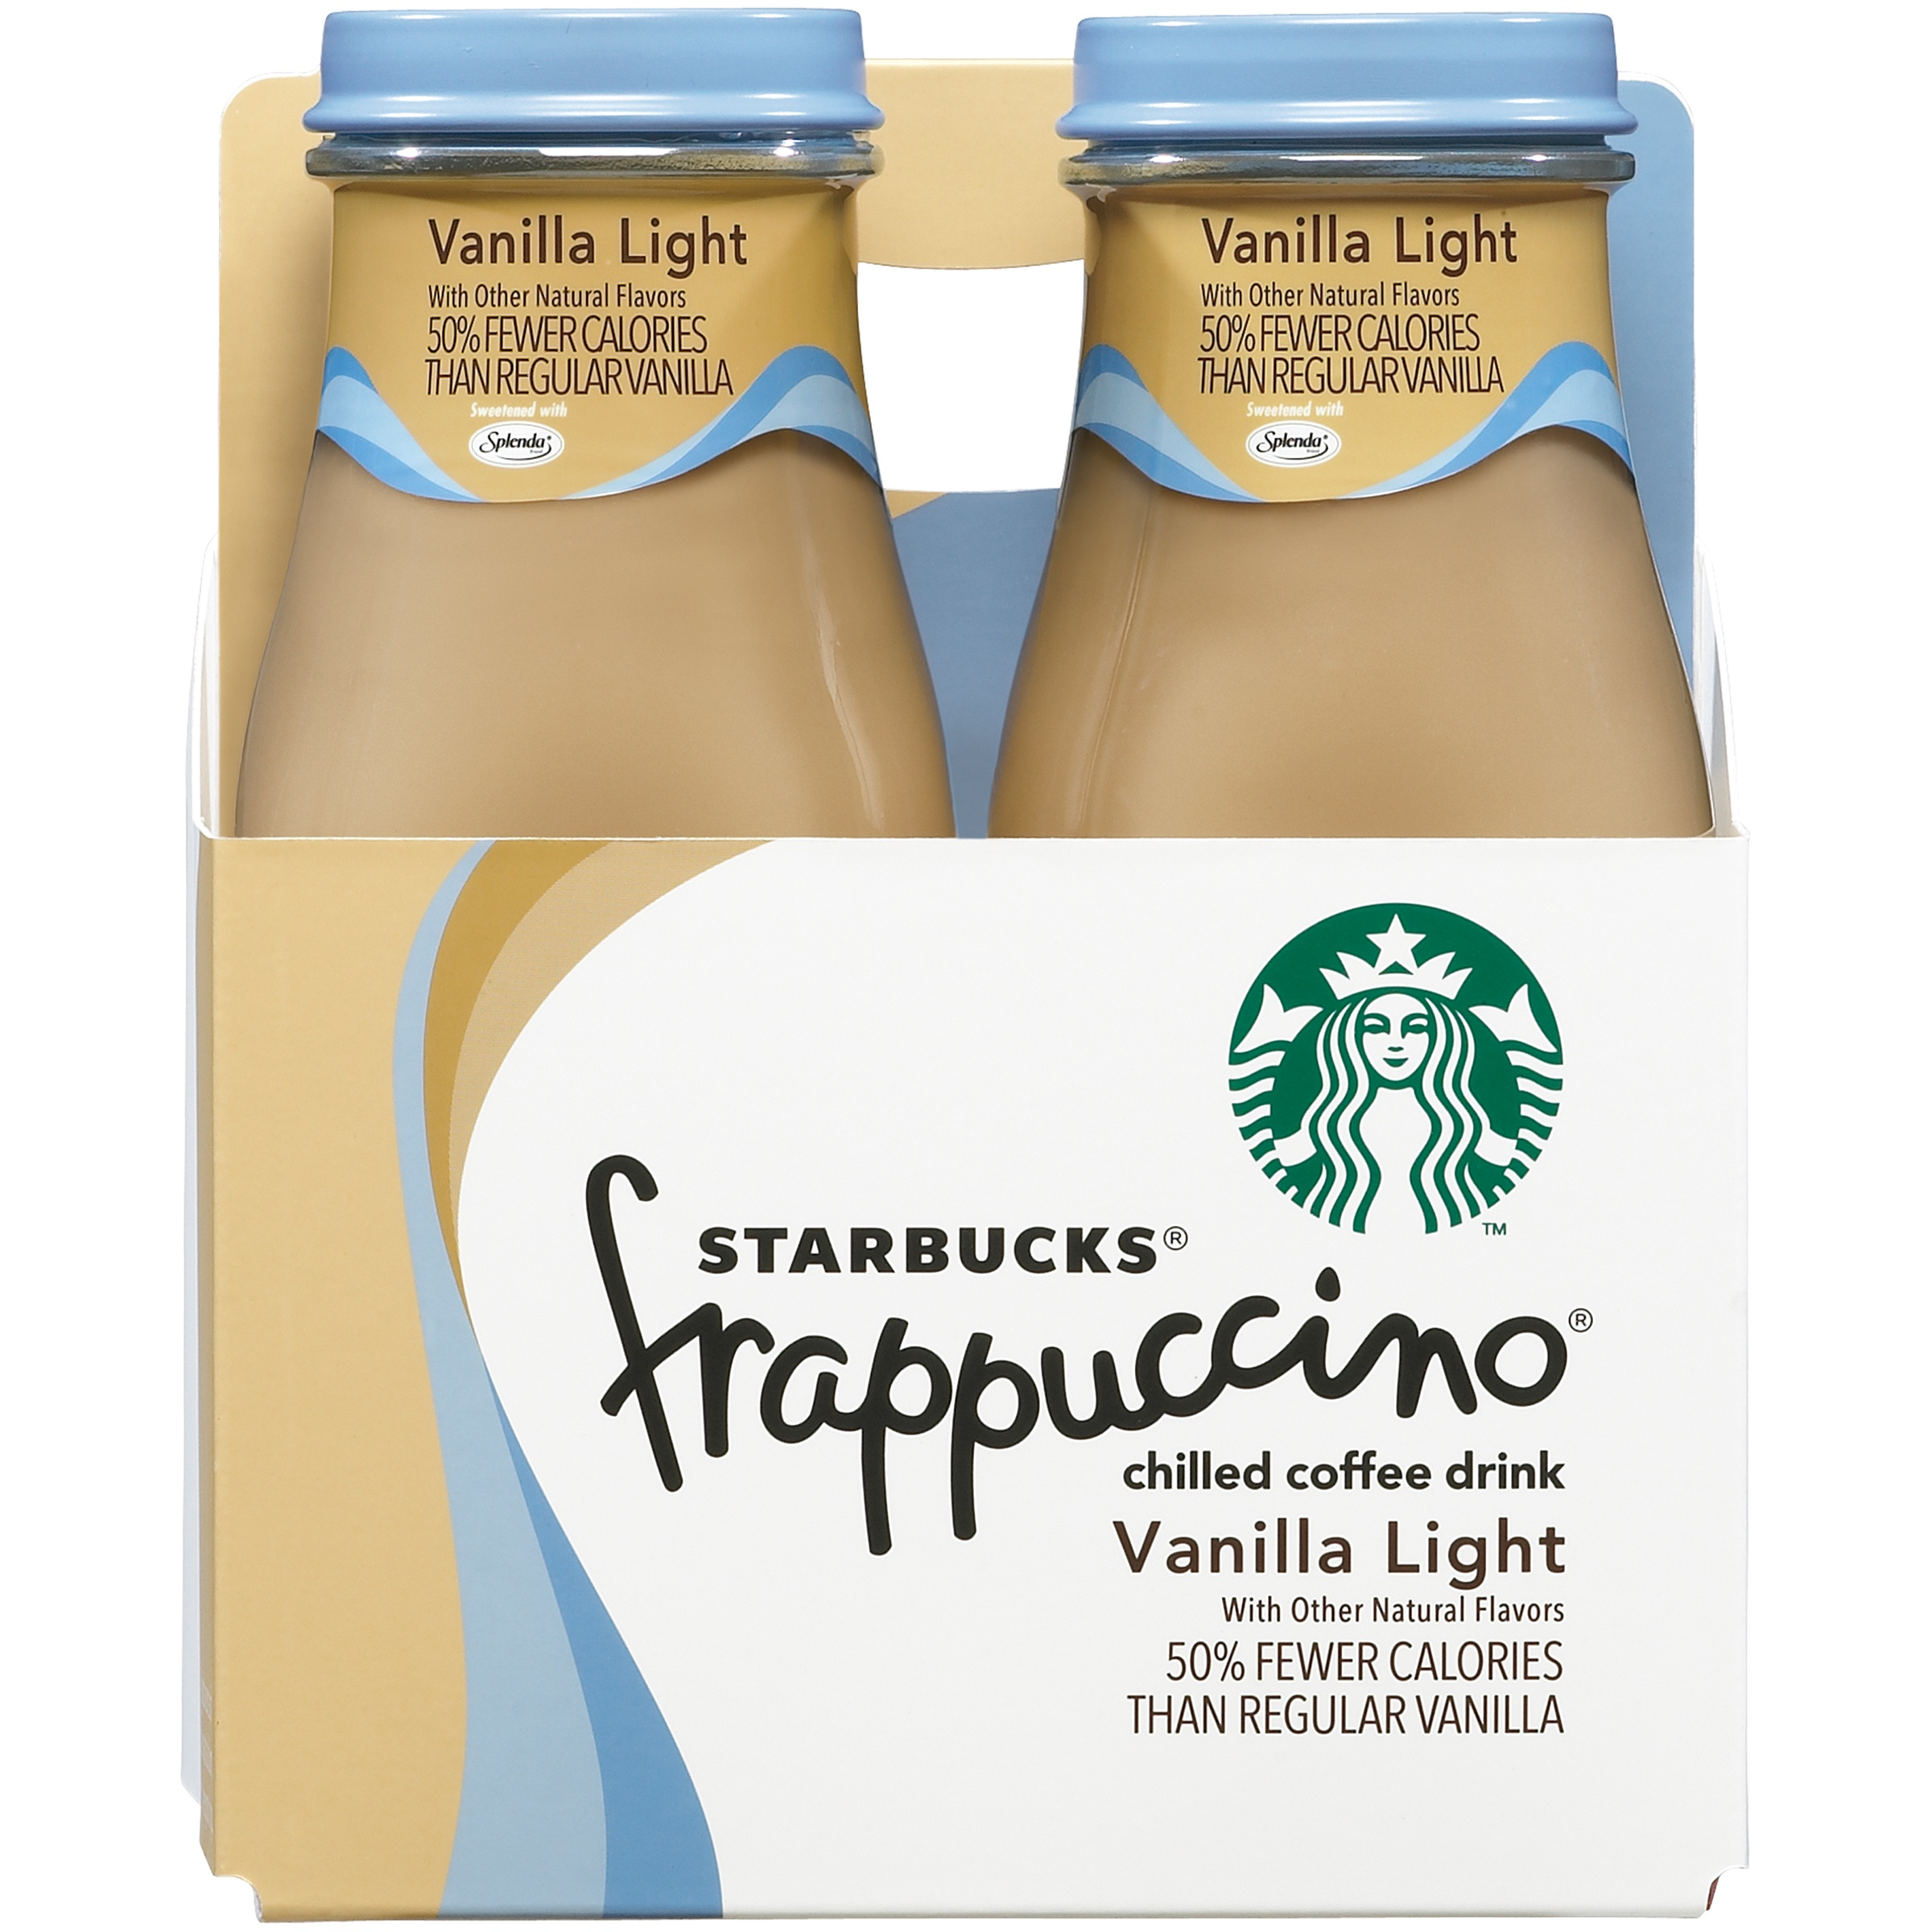 Starbucks Frappuccino Coffee Drink, Vanilla Light, 9.5 Fl Oz, 4 Count